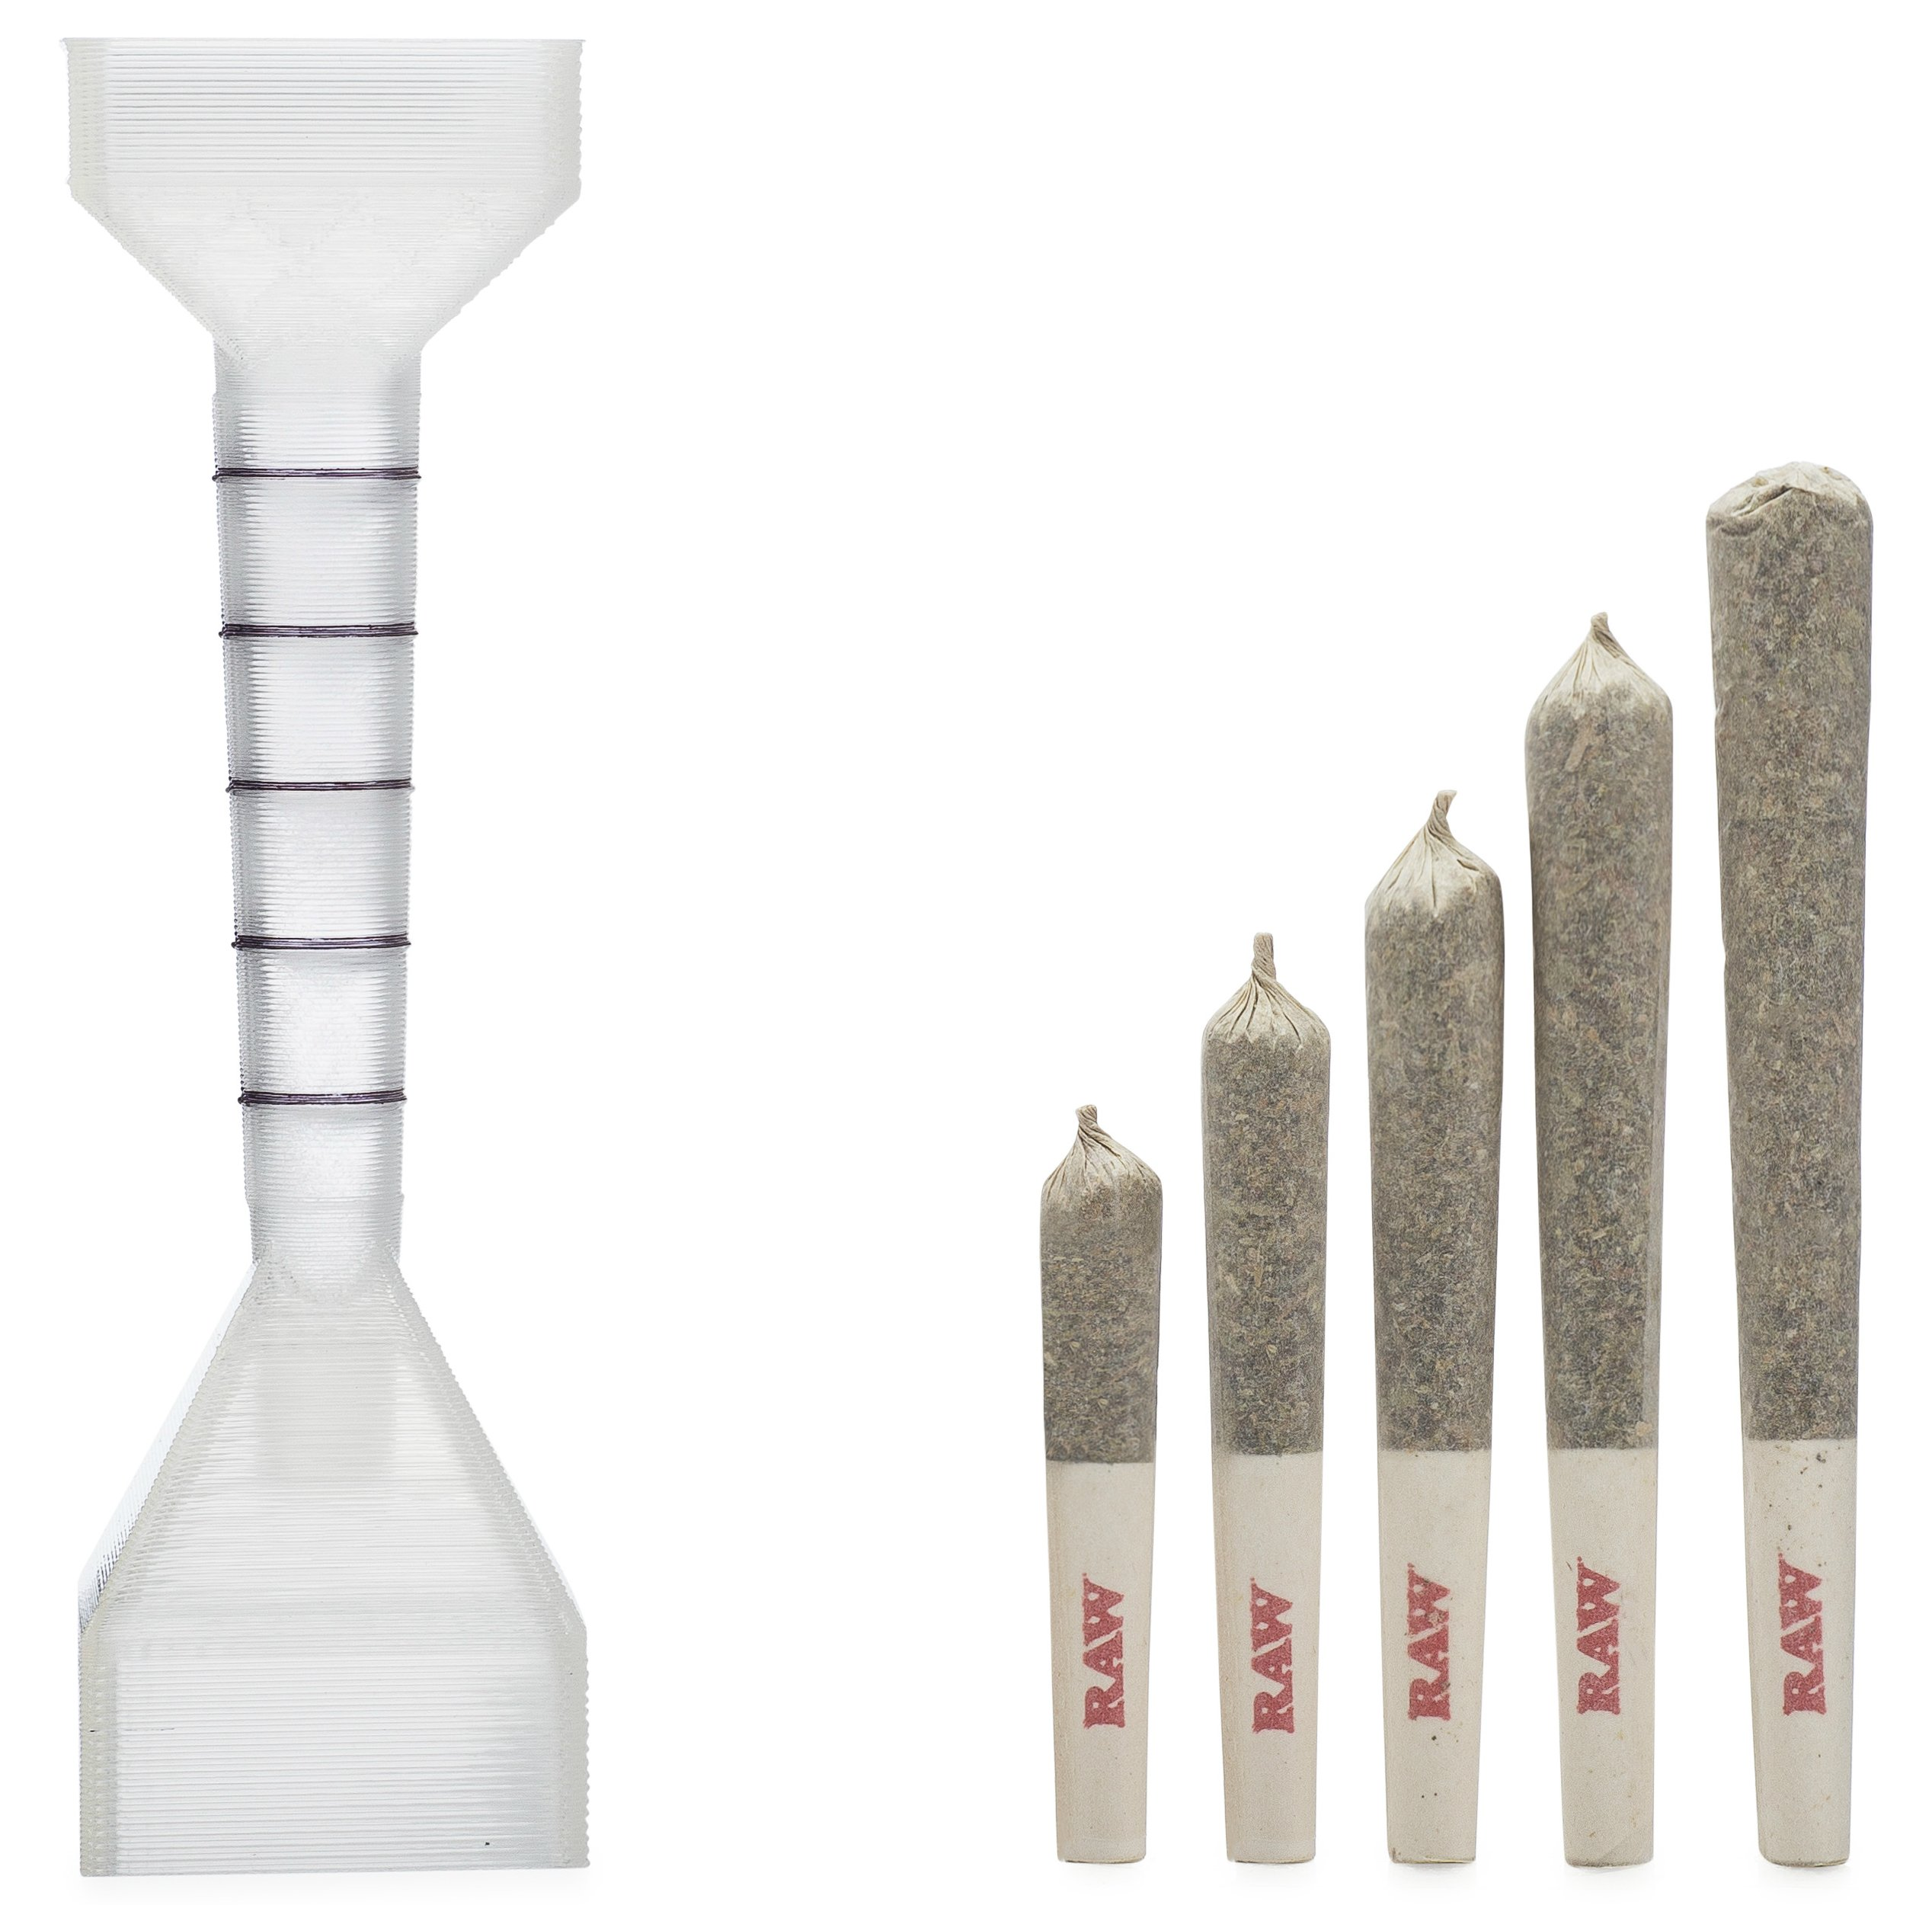 Cigarette Rolling Machine Loader Roller Filler. Made For RAW Cones Rolling Papers. Make Perfect Cigarettes. Includes: 20 Organic Hemp 1 1/4 RAW Cones (Pre Rolled) and Wooden Packing Stick. packNpuff